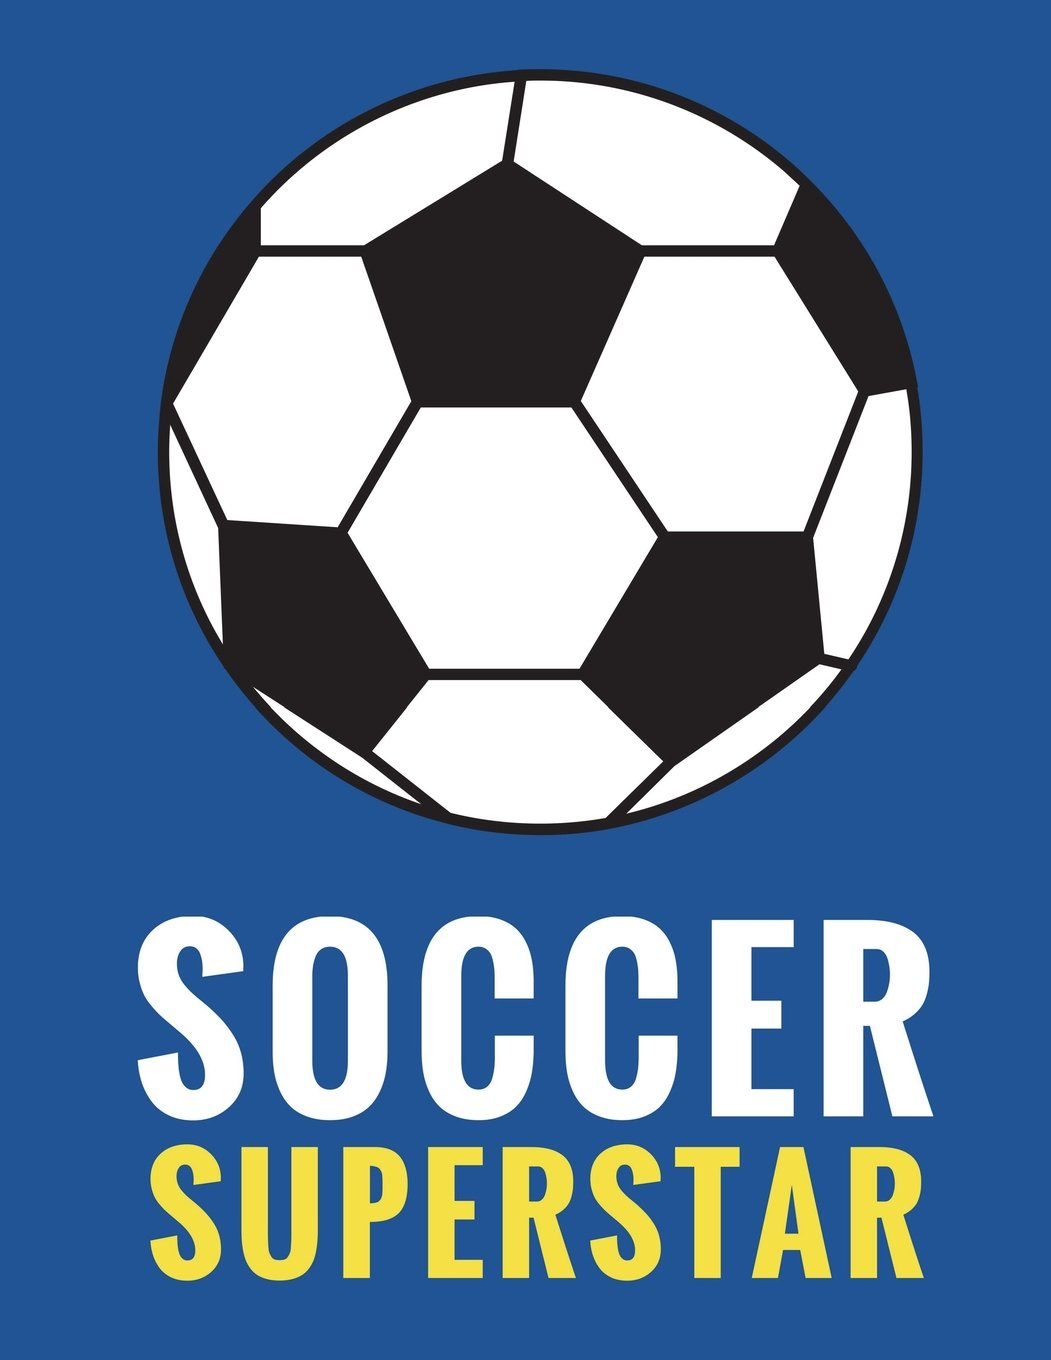 Download Soccer Superstar: Daily Composition Notebook for Soccer and Futbol Fans, Players, and Coaches - 100 Lined Pages, (Large, 8.5 x 11 in.) (Soccer Notebooks) (Volume 6) pdf